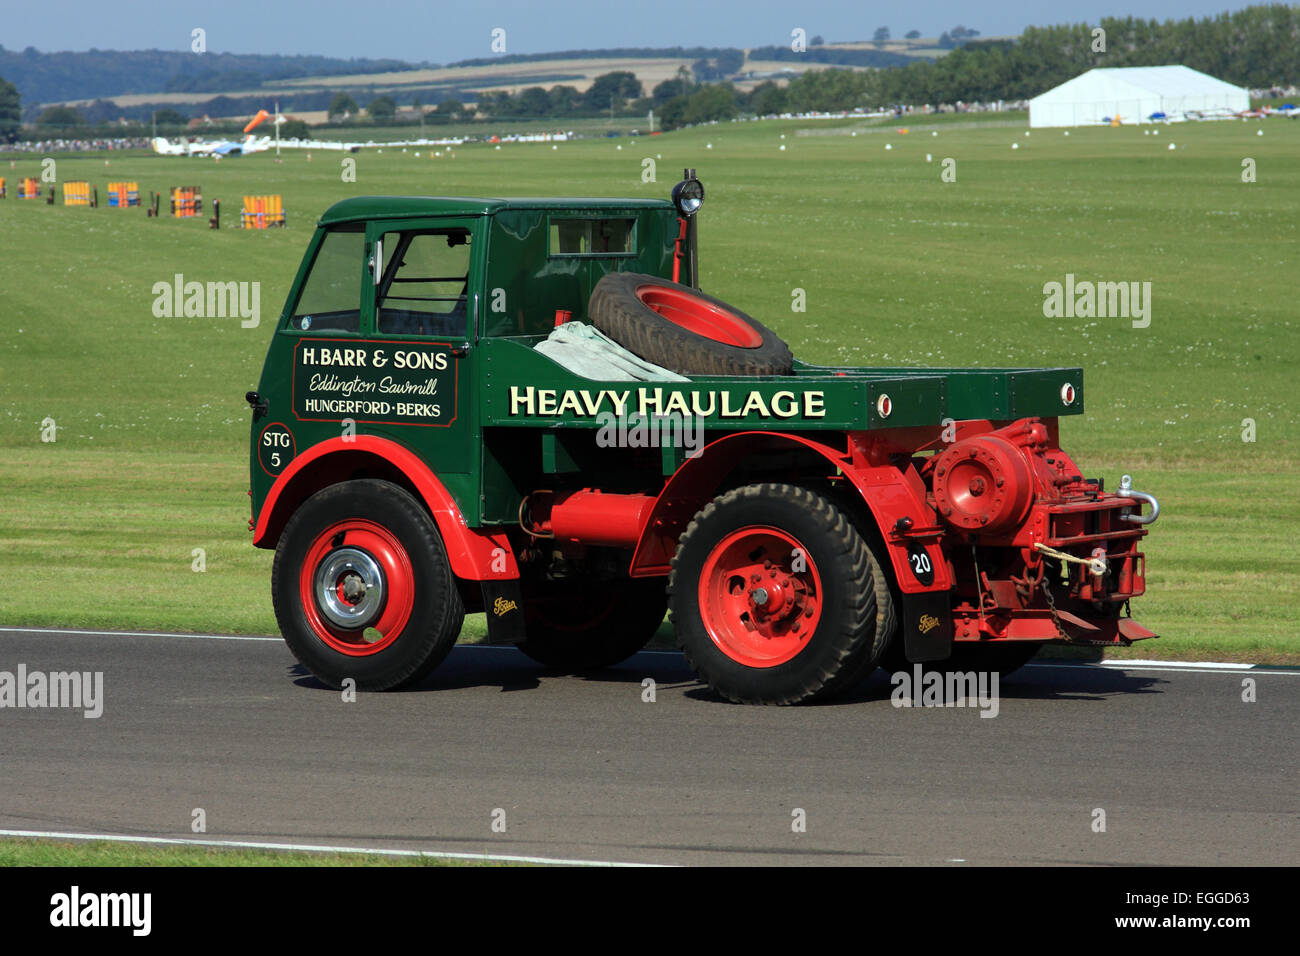 Parade von Oldtimer-Fahrzeugen / Goodwood Revival / Goodwood / UK Stockbild